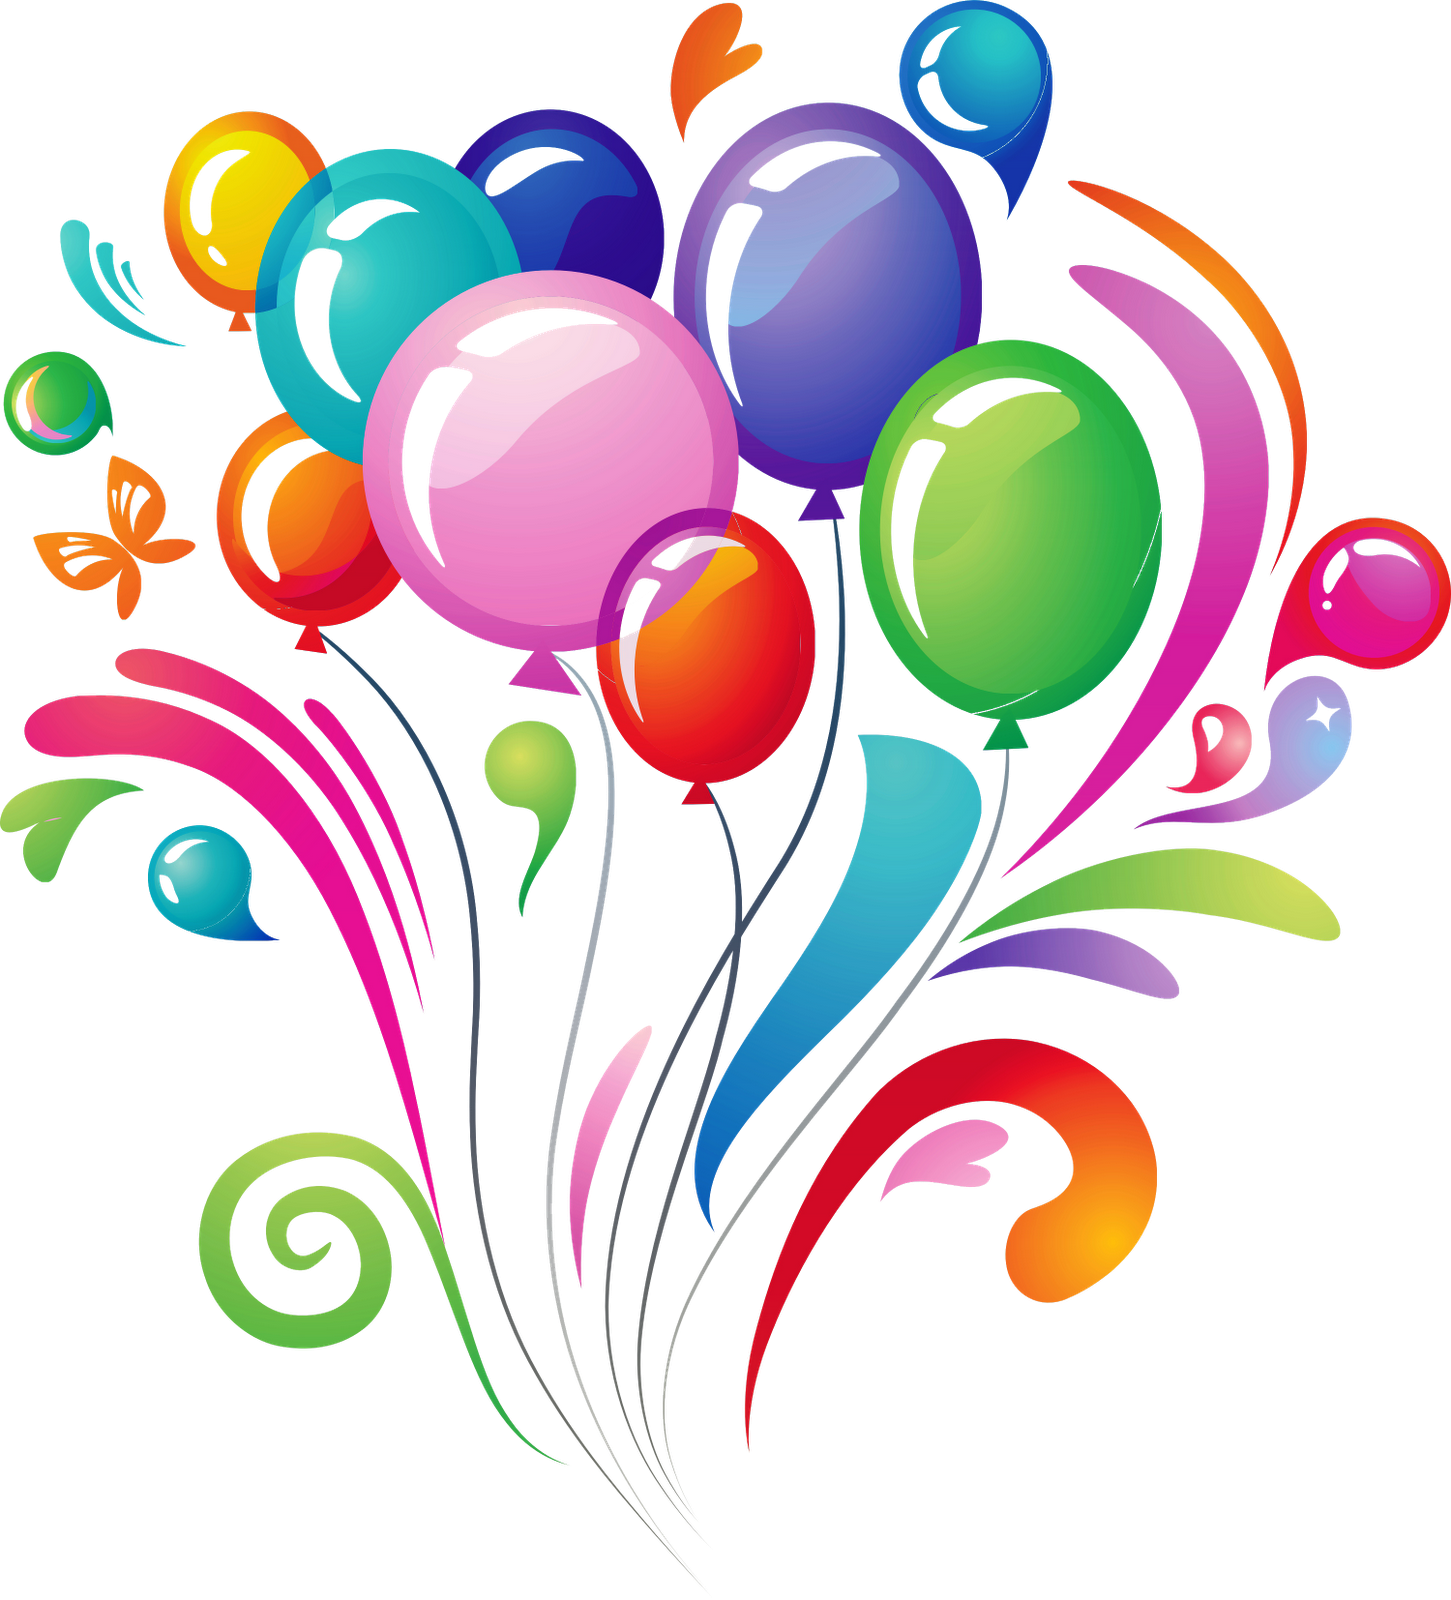 Happy Birthday Ballons Png - Happy Birthday Balloons PNG Photo   PNG All